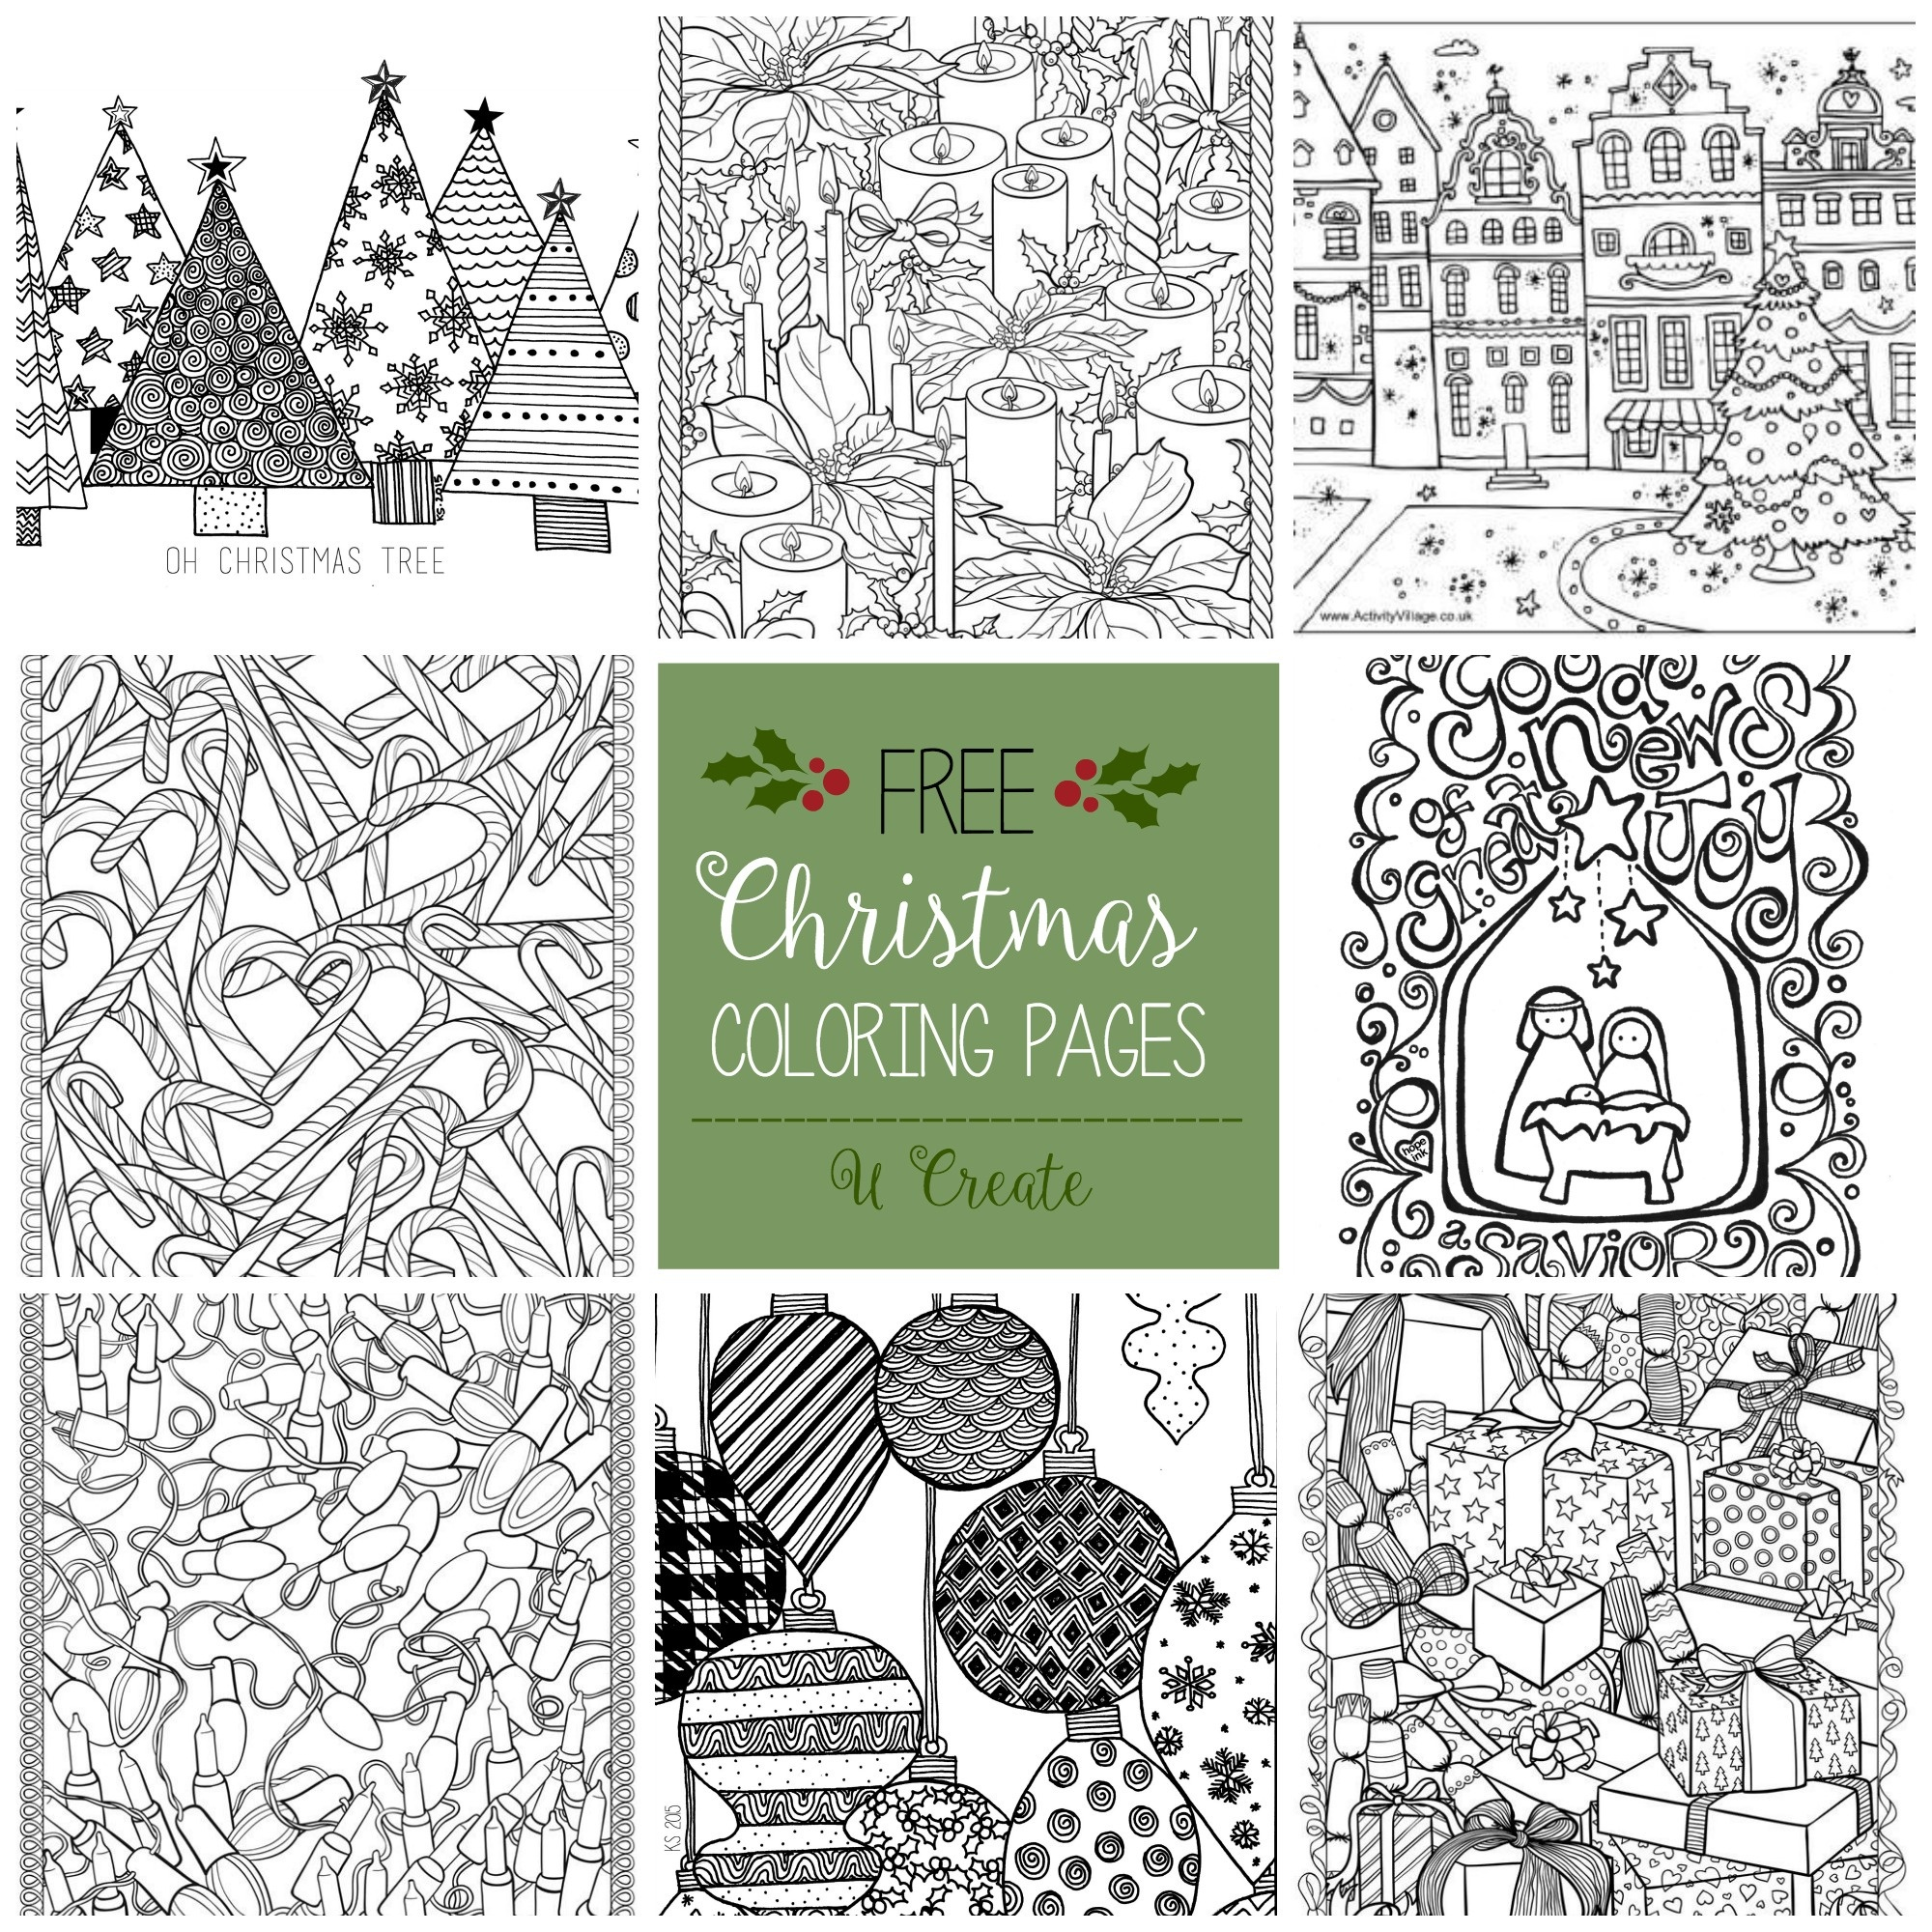 Free Christmas Adult Coloring Pages - U Create - Free Printable Christmas Coloring Pages